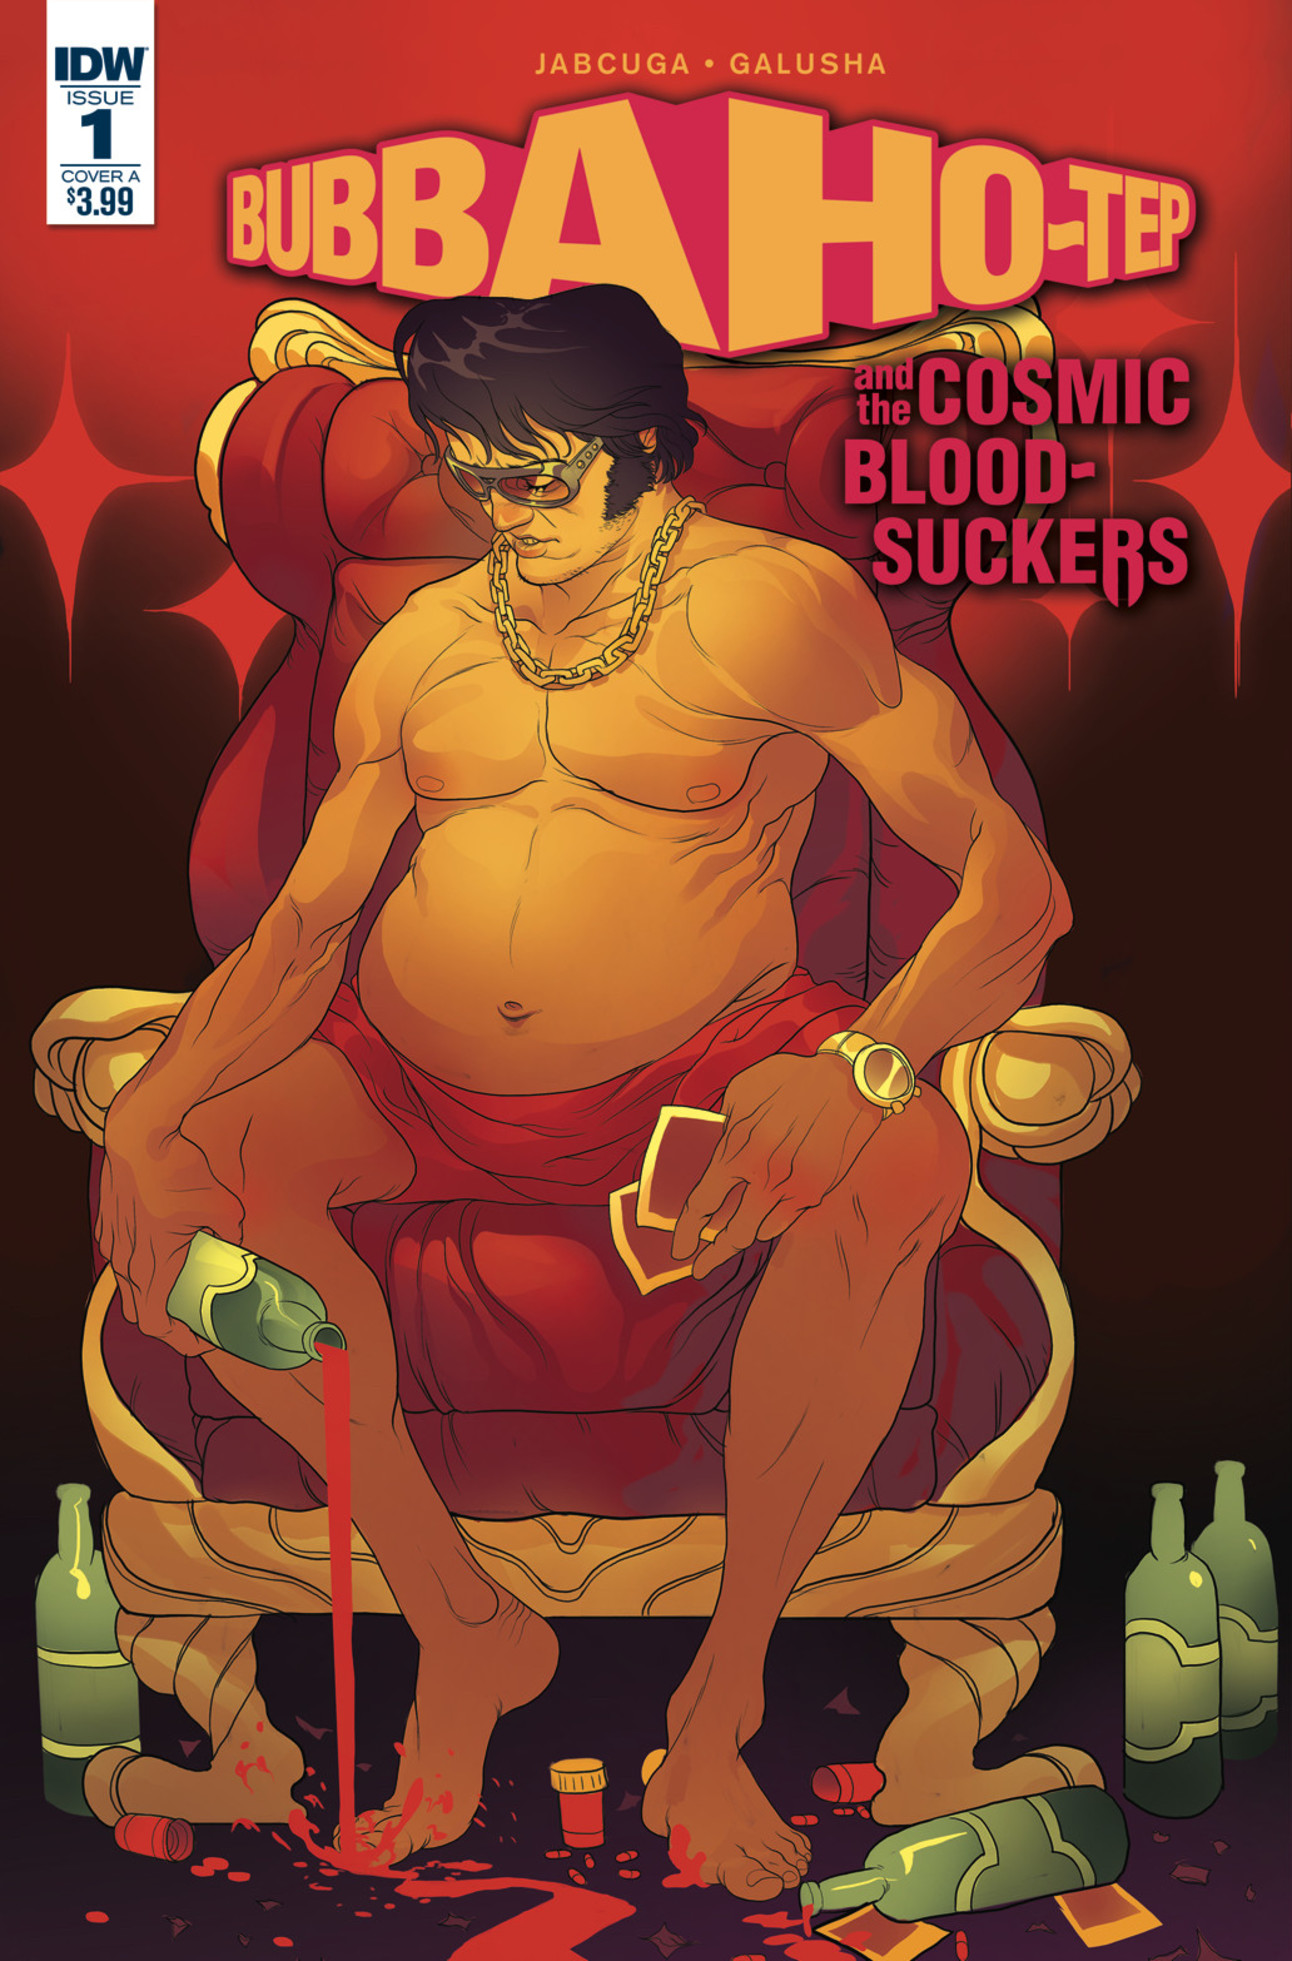 idw_bubba_ho-tep_1_cover.jpg